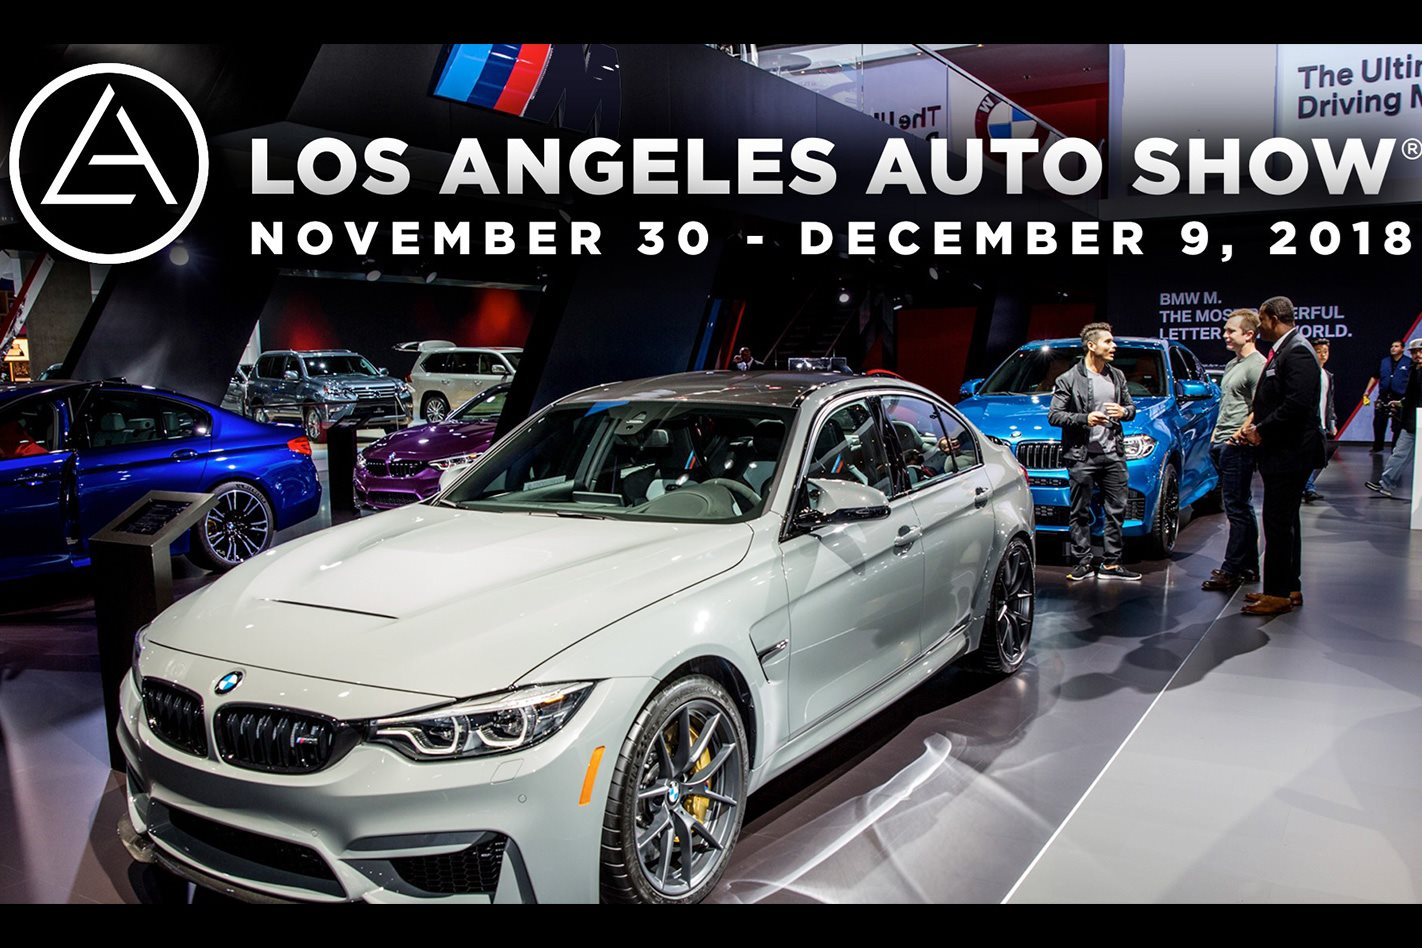 Los Angeles Auto Show What To Expect - When is the la car show